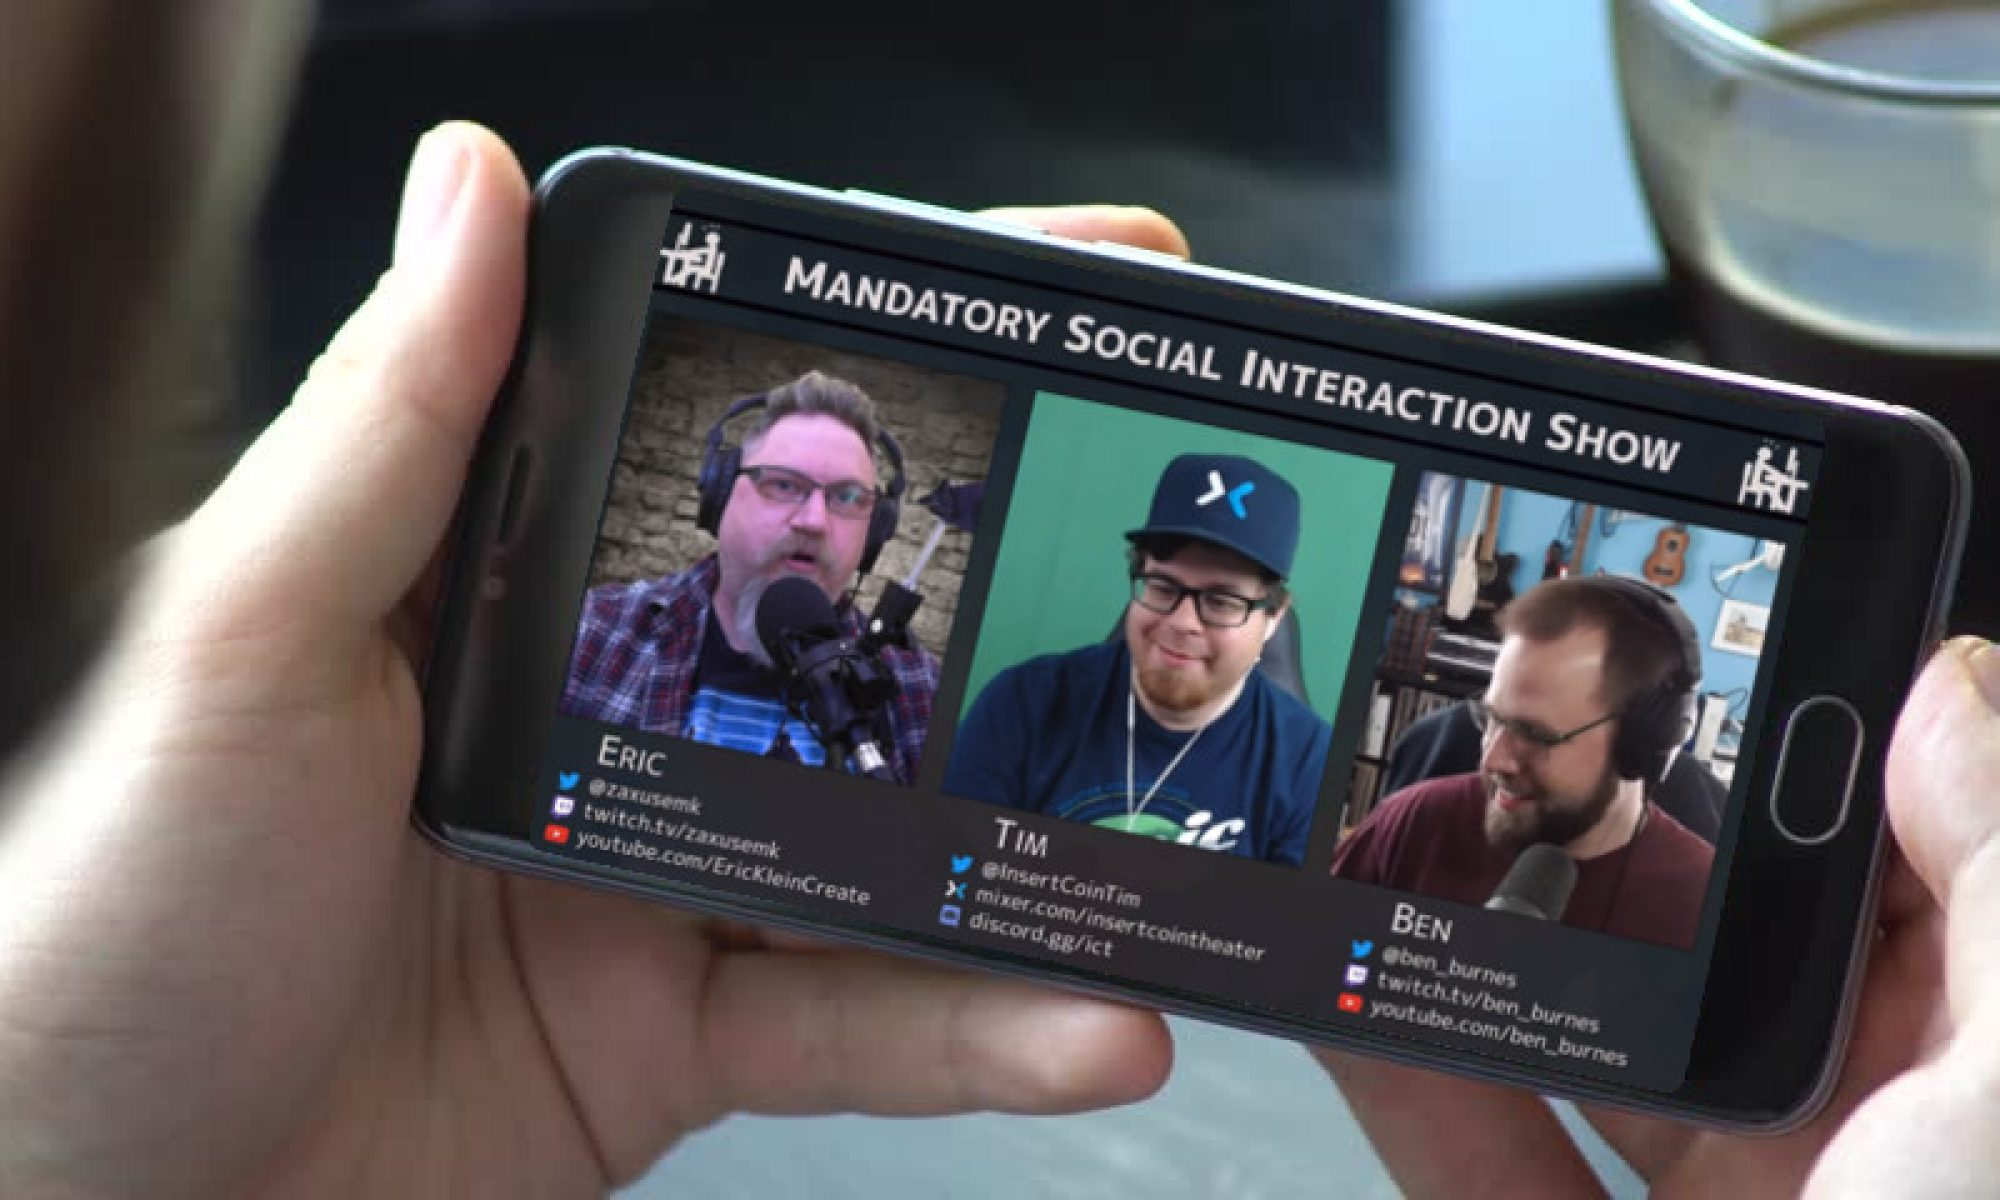 Mandatory Social Interaction Show